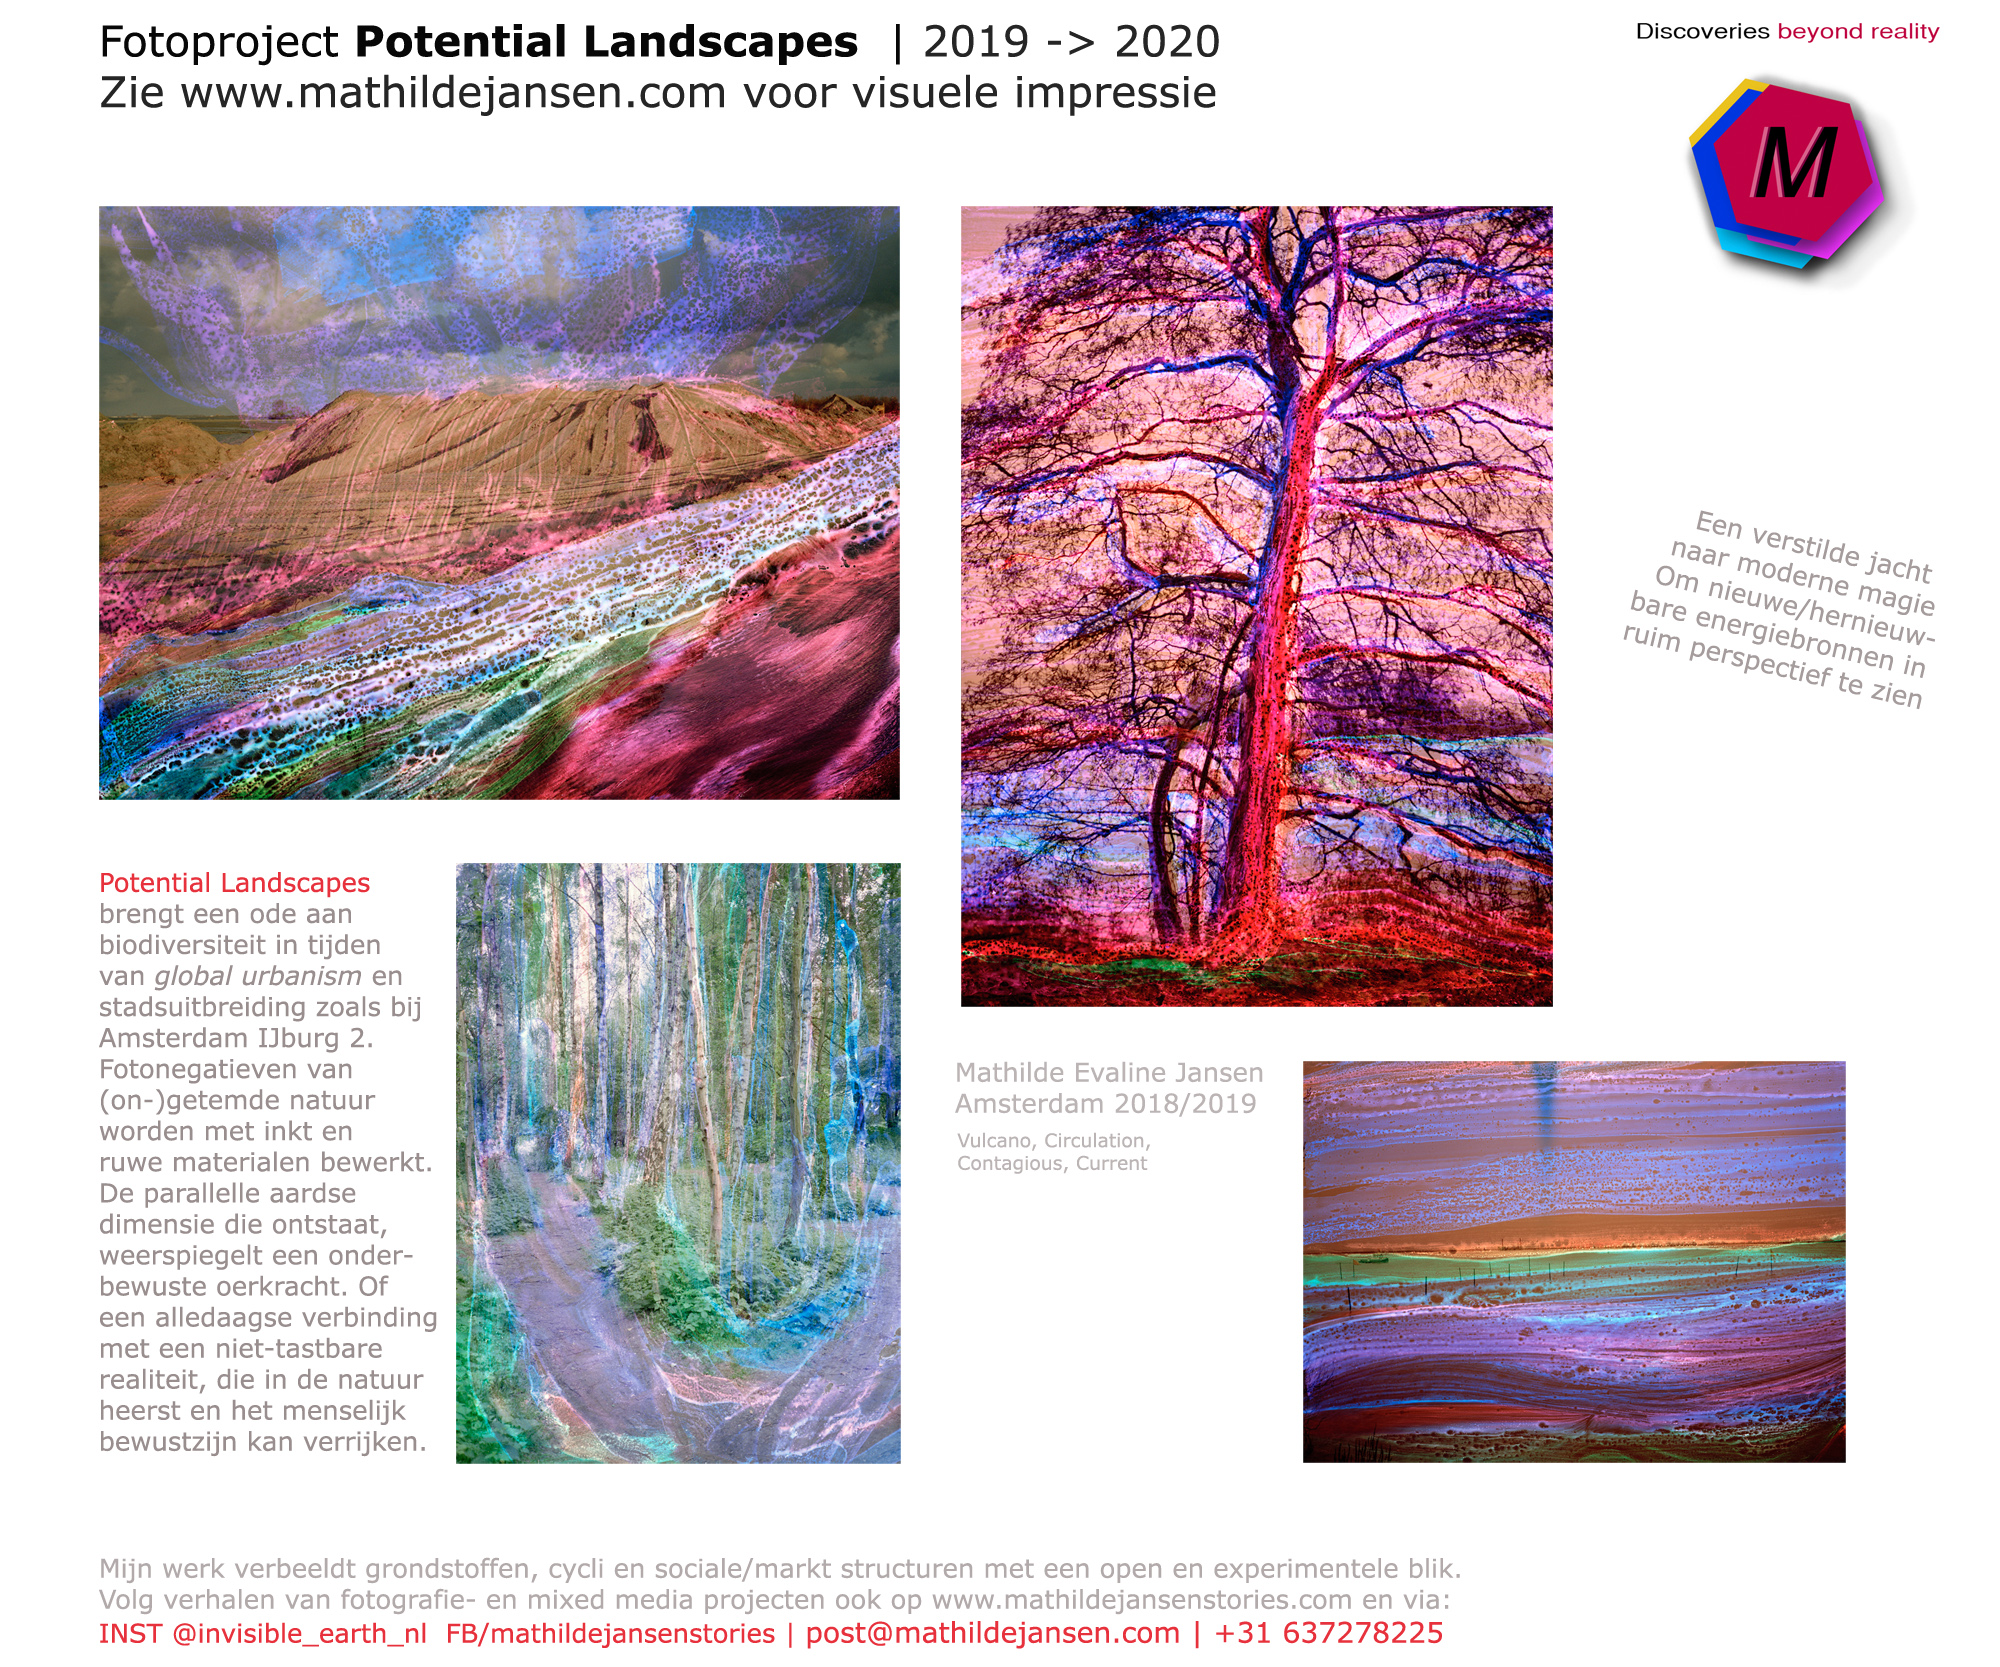 Fotoproject Potential Landscapes - impressie start van project